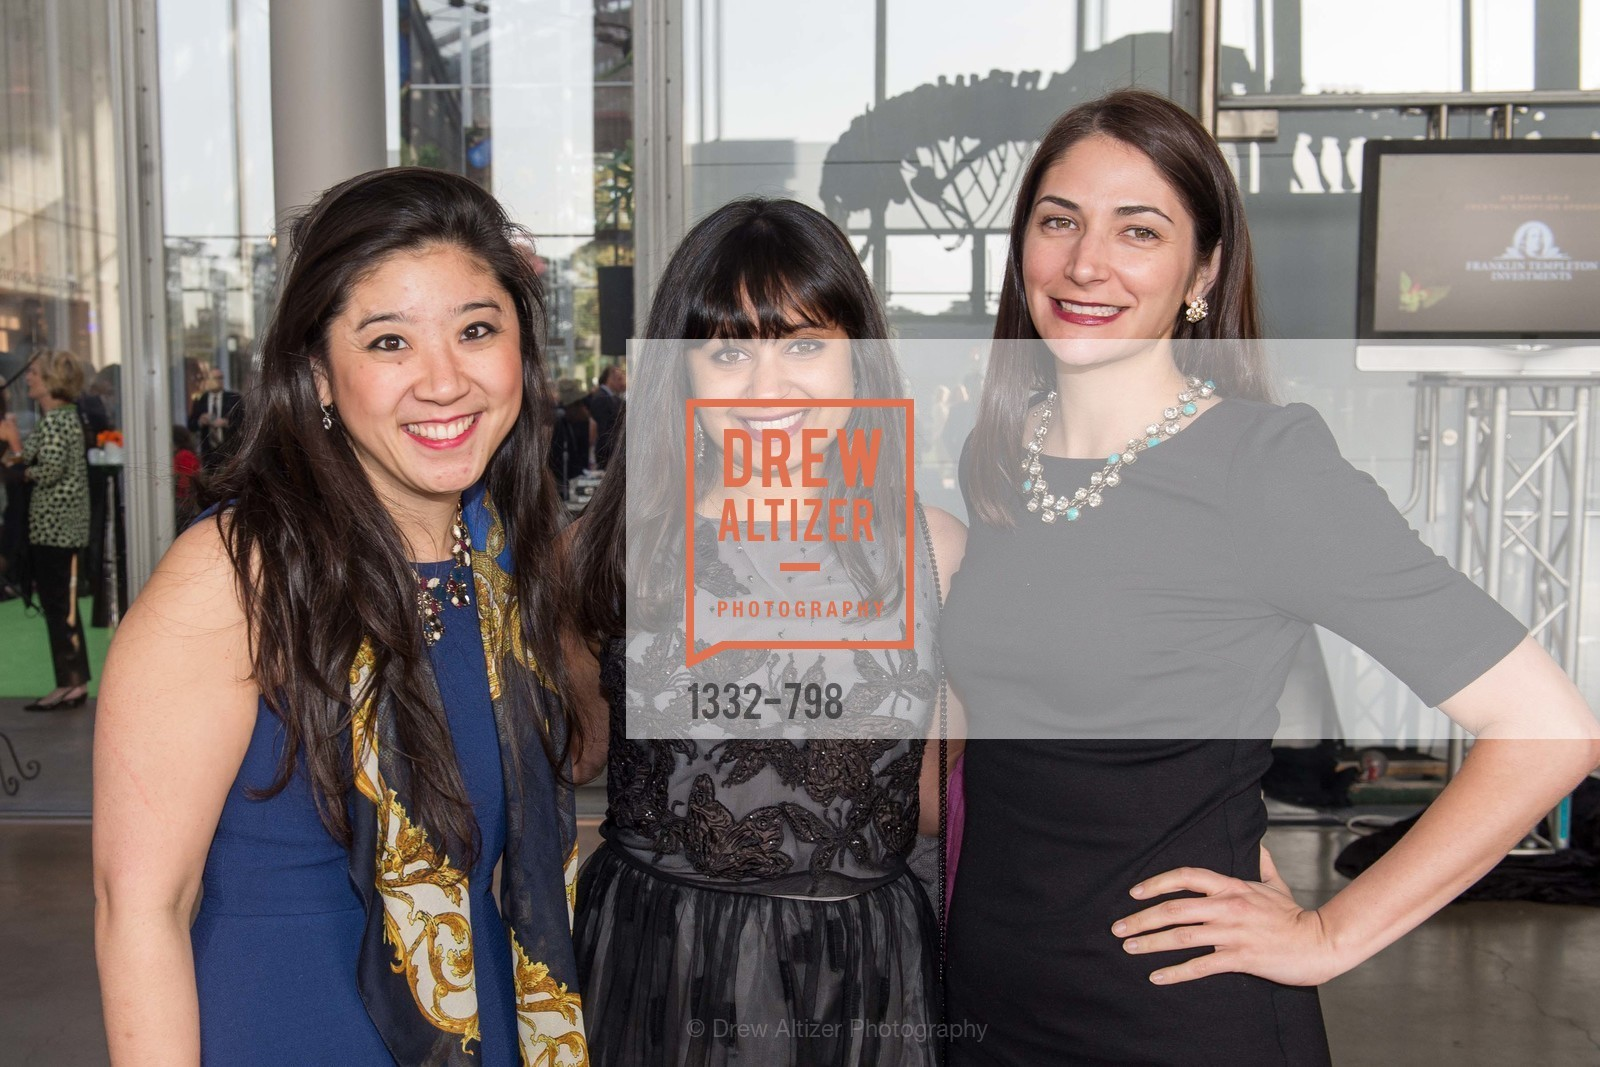 Jessica Isokawa, Agiti Iyer, Leah Recht, CALIFORNIA ACADEMY OF SCIENCES - Big Bang Gala 2015, US, April 23rd, 2015,Drew Altizer, Drew Altizer Photography, full-service agency, private events, San Francisco photographer, photographer california